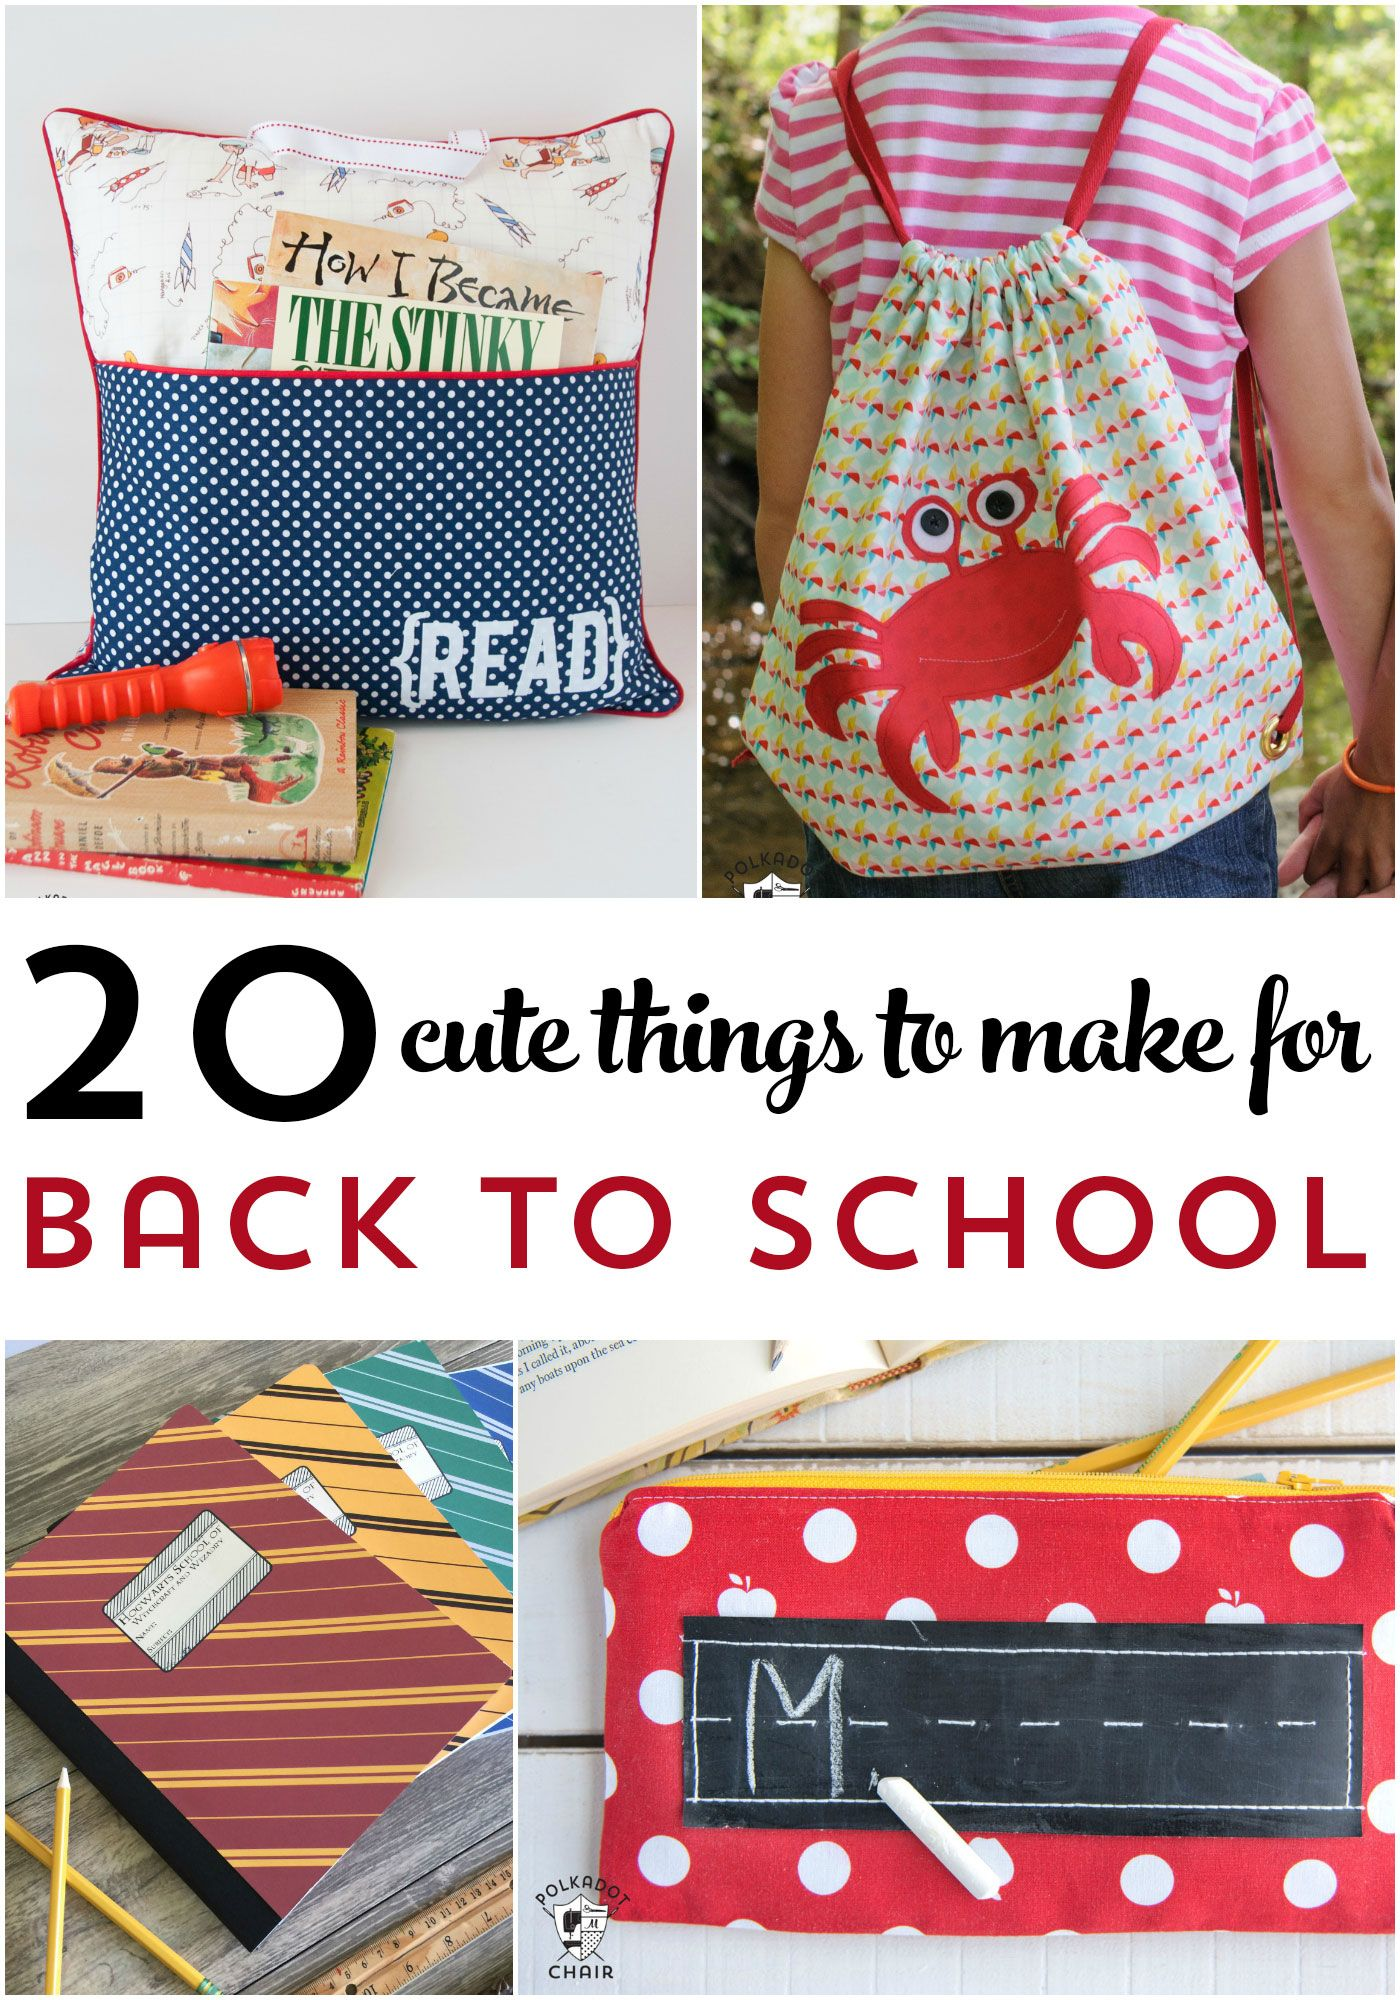 How to's : More than 25 Cute things to make for Back to School - from backpacks to lunch boxes, notebooks and more!